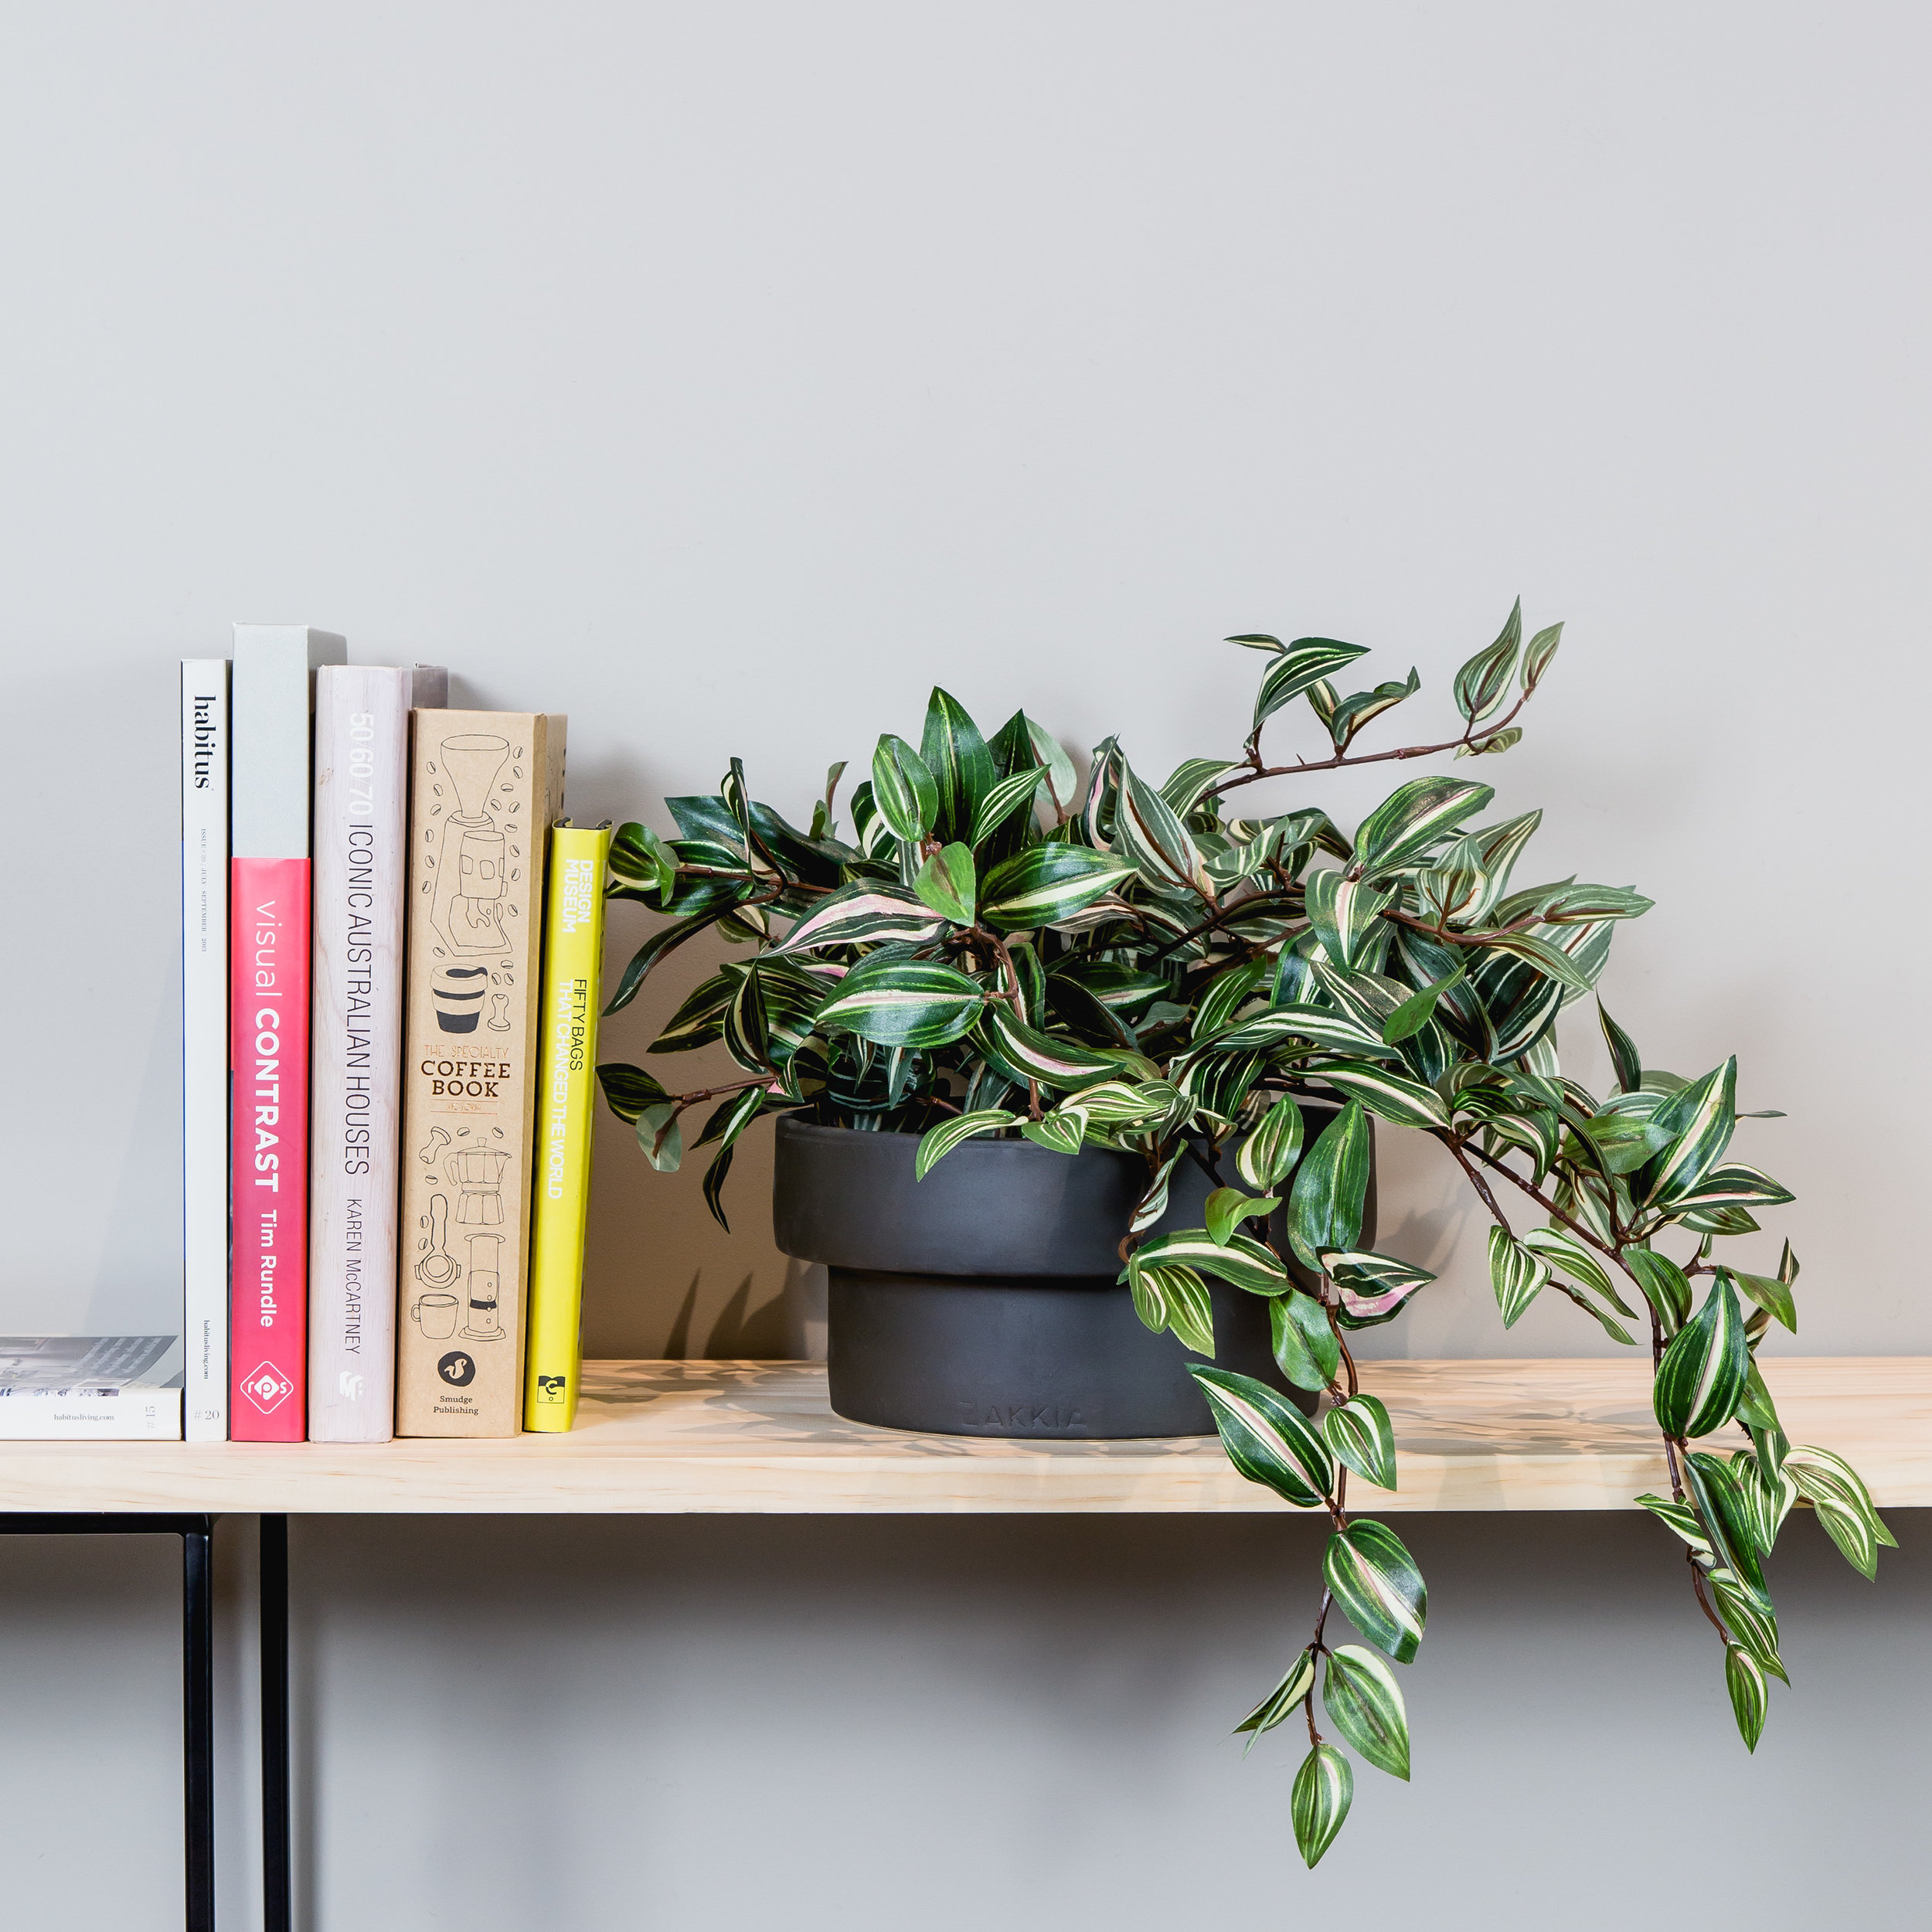 Not your typical potted artificial plant ... - Our botanical collection is made to order. Handpicking only premium quality, life-like faux we permanently pot them in equally beautiful handmade, contemporary styled vessels.